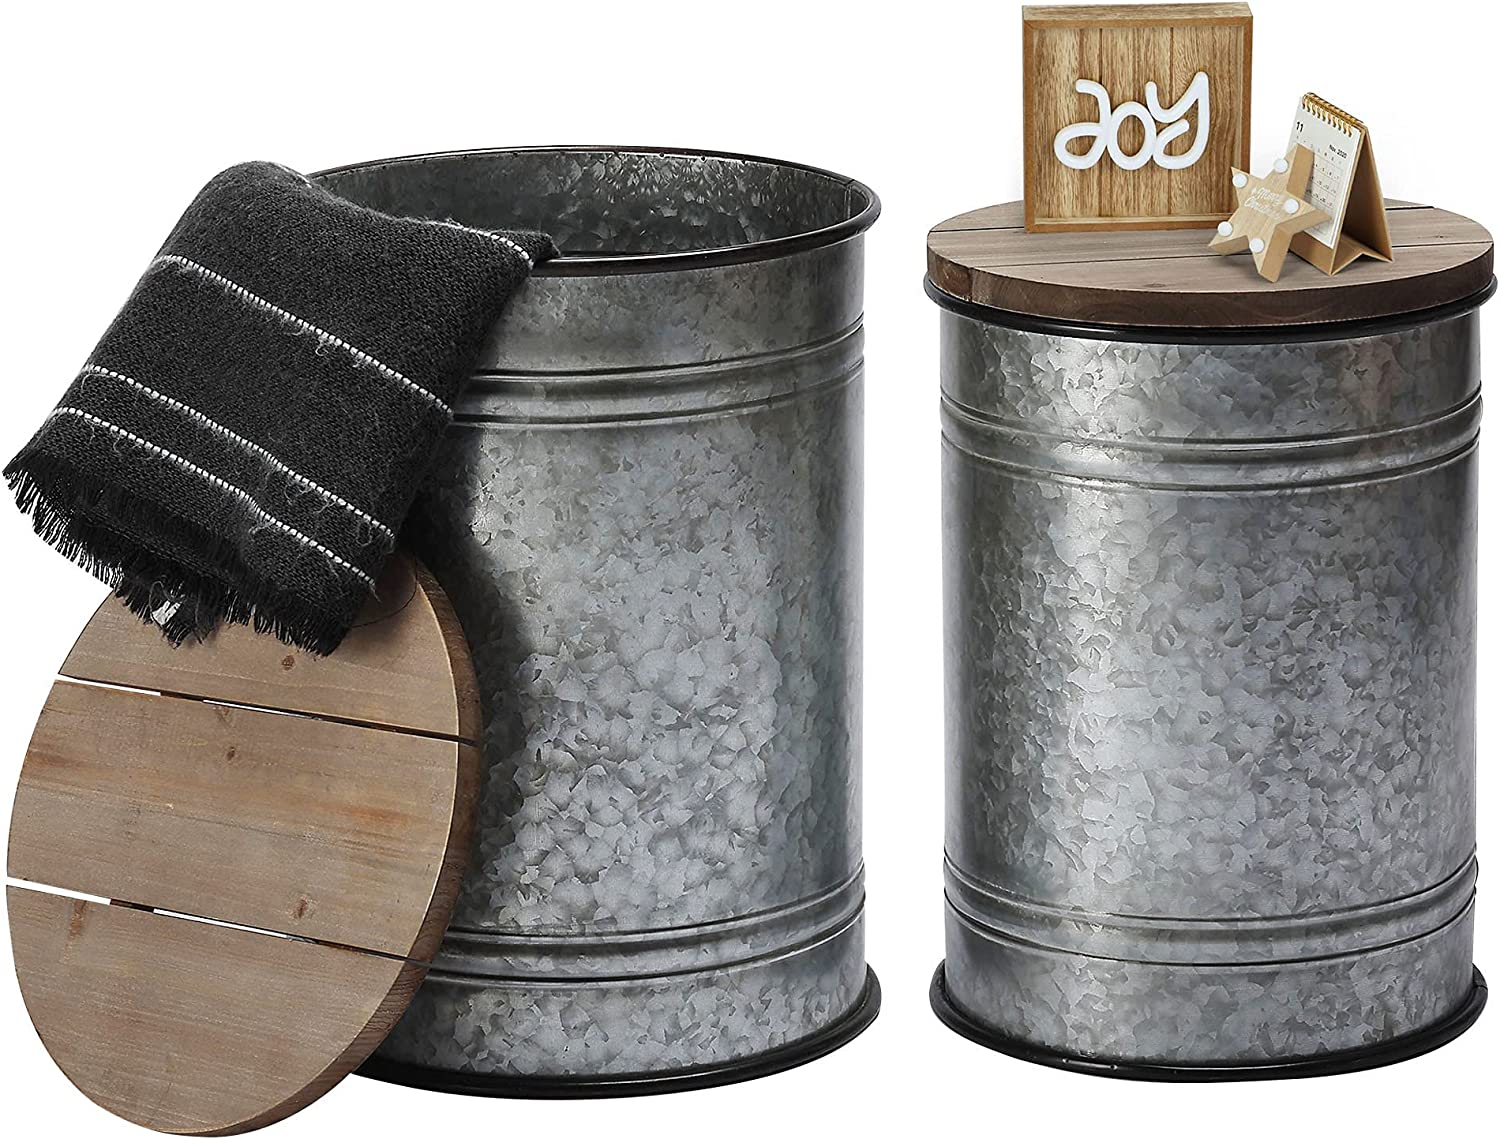 Rustic Storage Ottoman Seat Stool, Farmhouse Accent Side Table, Antique Galvanized Metal End Table Box Bin with Round Wooden Lid Set of 2 (Galvanized)